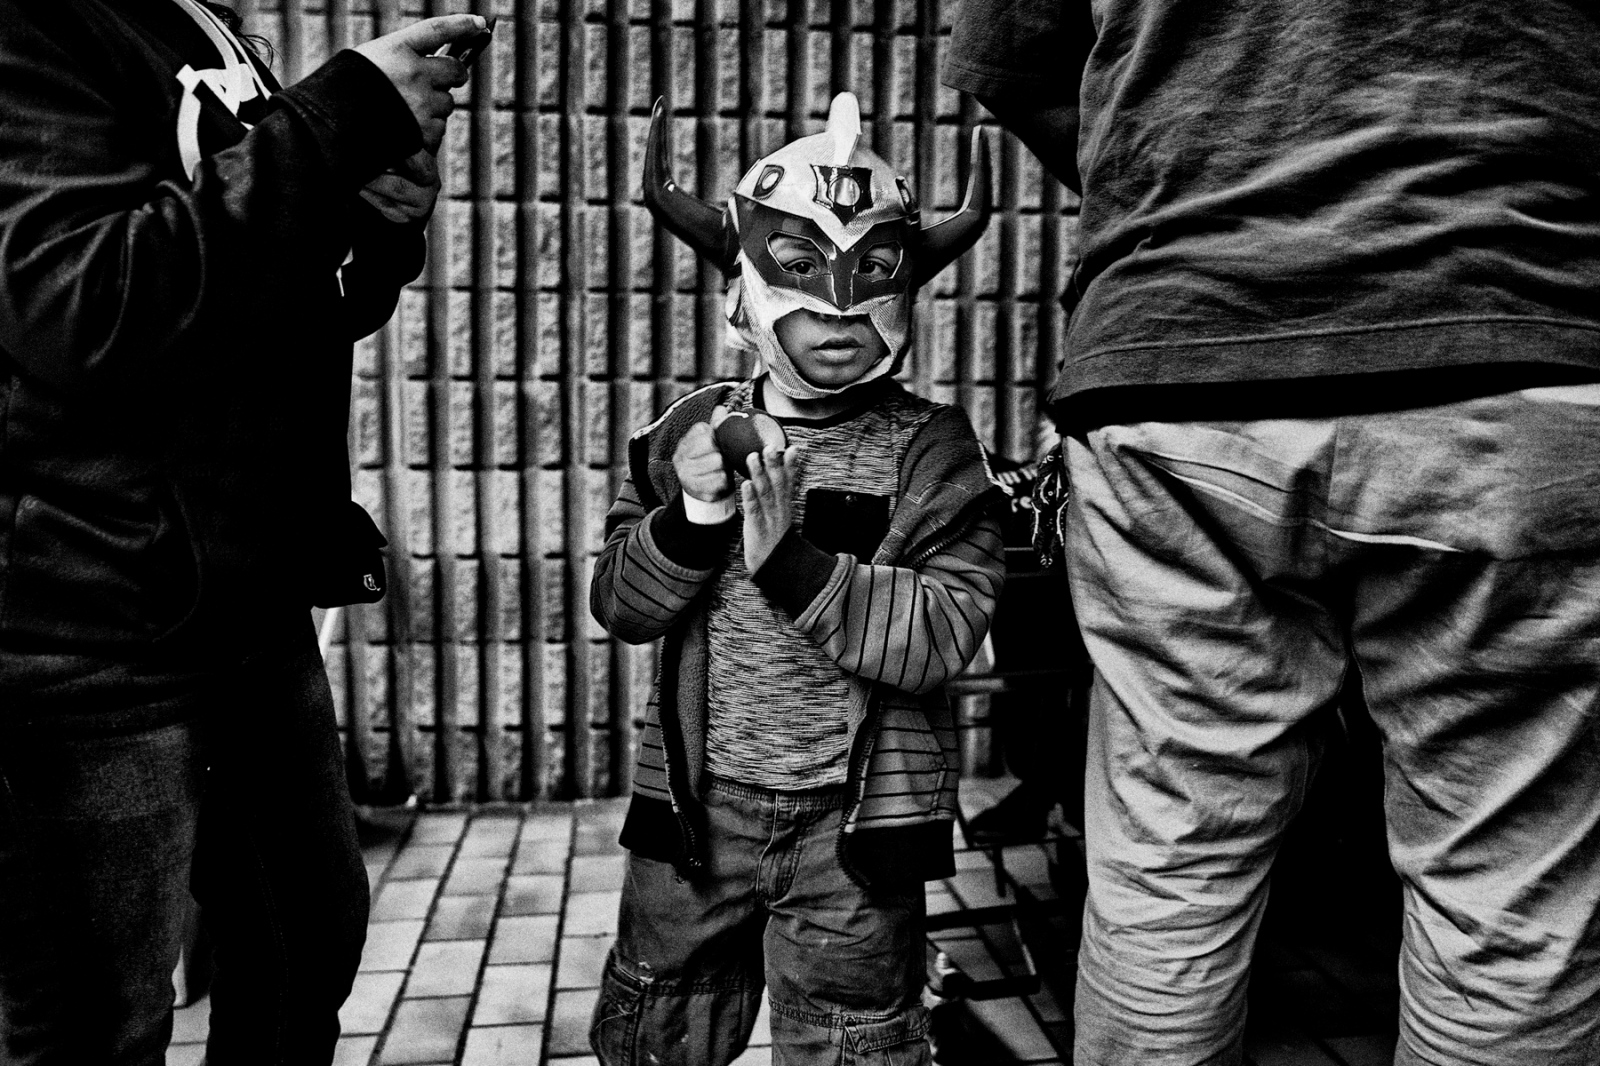 Young Angel is wearing the mask of his super hero during an intermission where luchadores get to meet and greet and sign autographs for their fans.